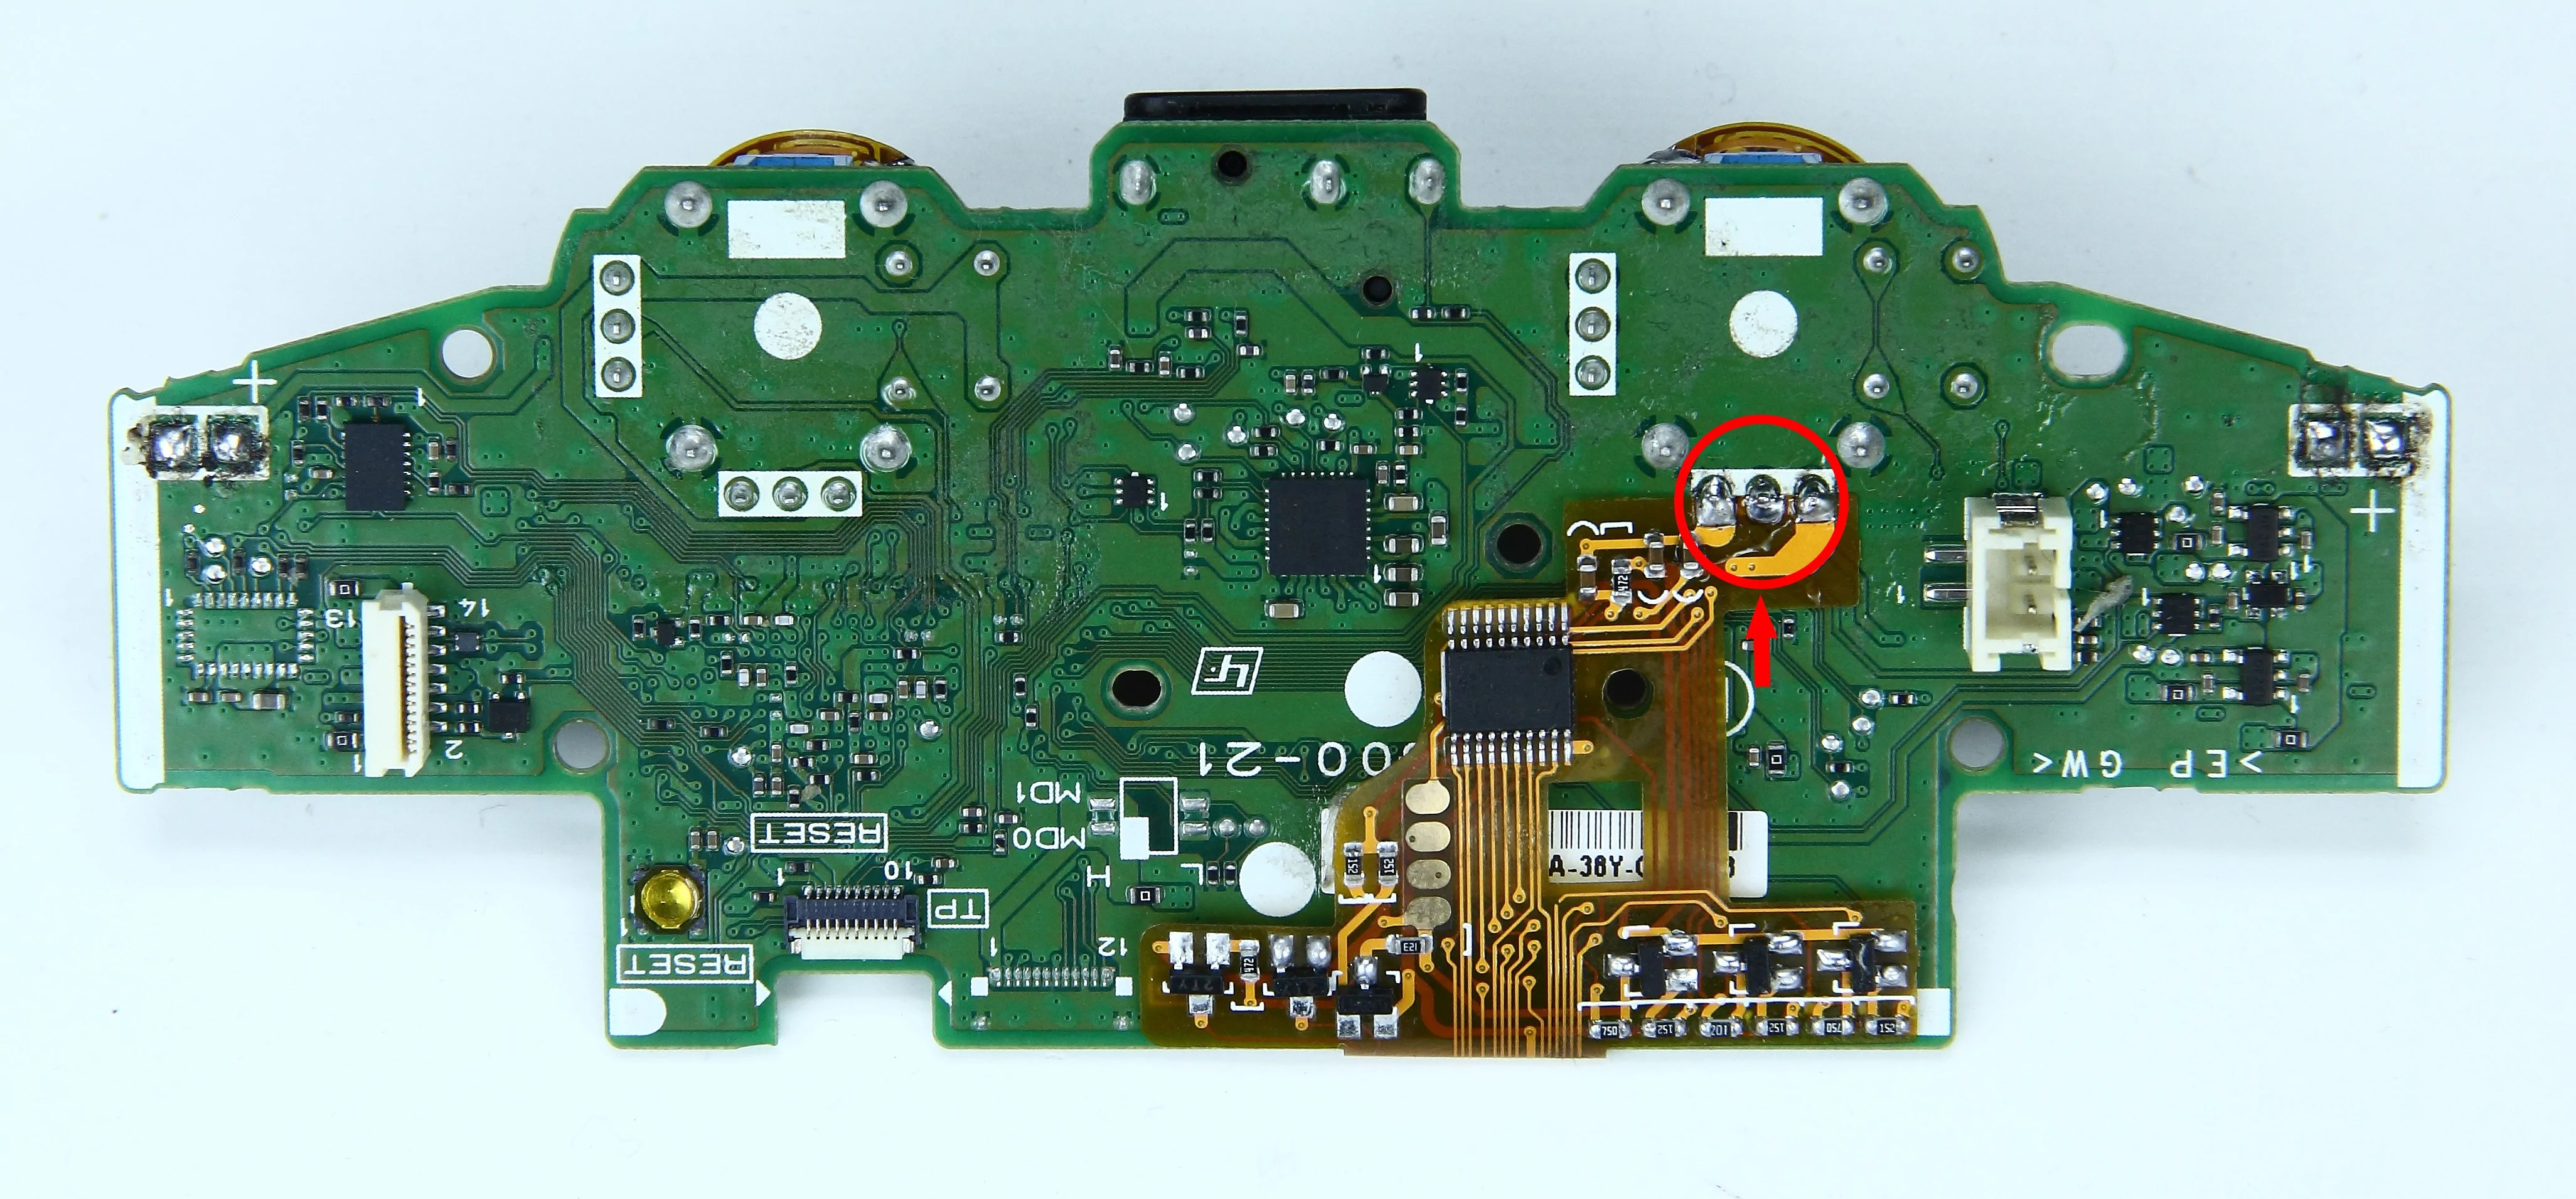 hight resolution of studio gyokimae arduino ps controller interface dualshock pcb scans playstation to usb wiring diagram diagram use on pc and tecnomente of retro adapter